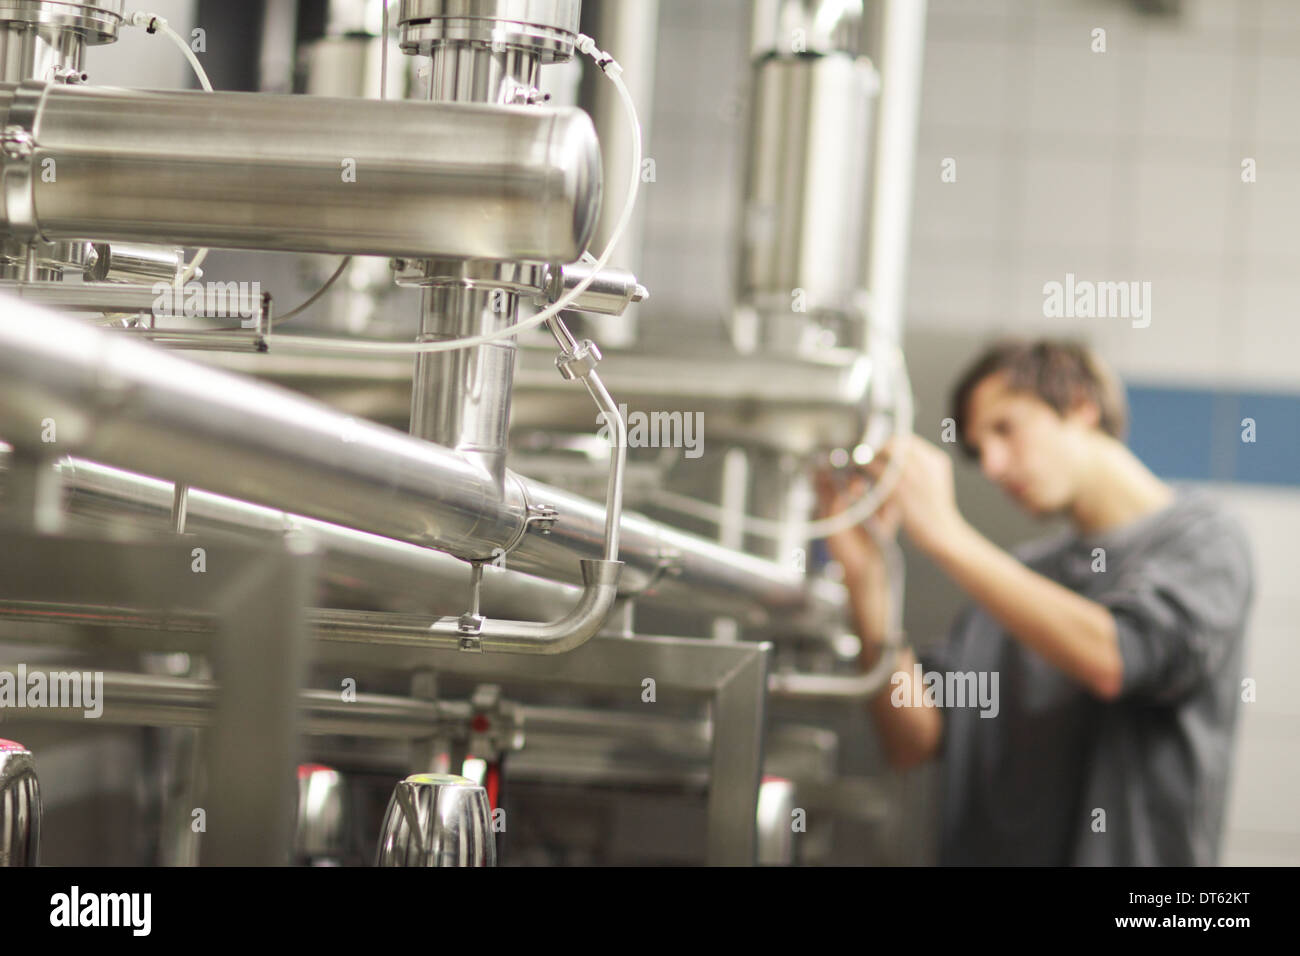 Man working in brewery Stock Photo